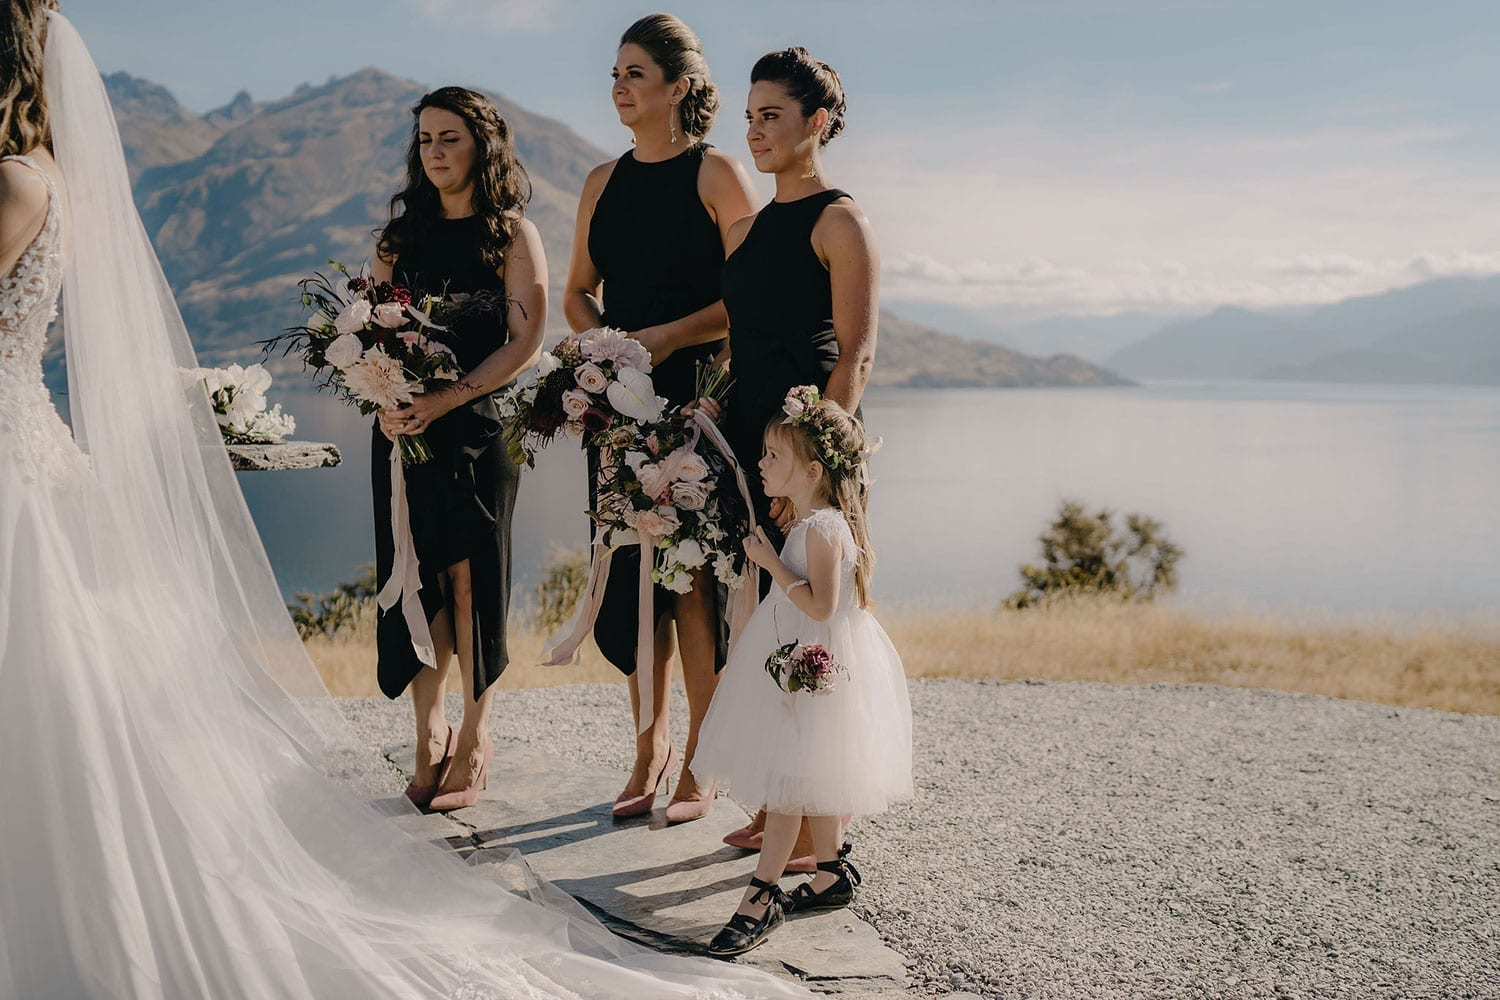 Vinka Design Features Real Weddings - bride in custom made gown, a beautiful intricate, sheer lace bodice, with a flowing, detachable, silk chiffon and tulle overskirt. The skirt had hand appliqued lace strategically placed throughout and trailing up from the train. Bridesmaids at ceremony